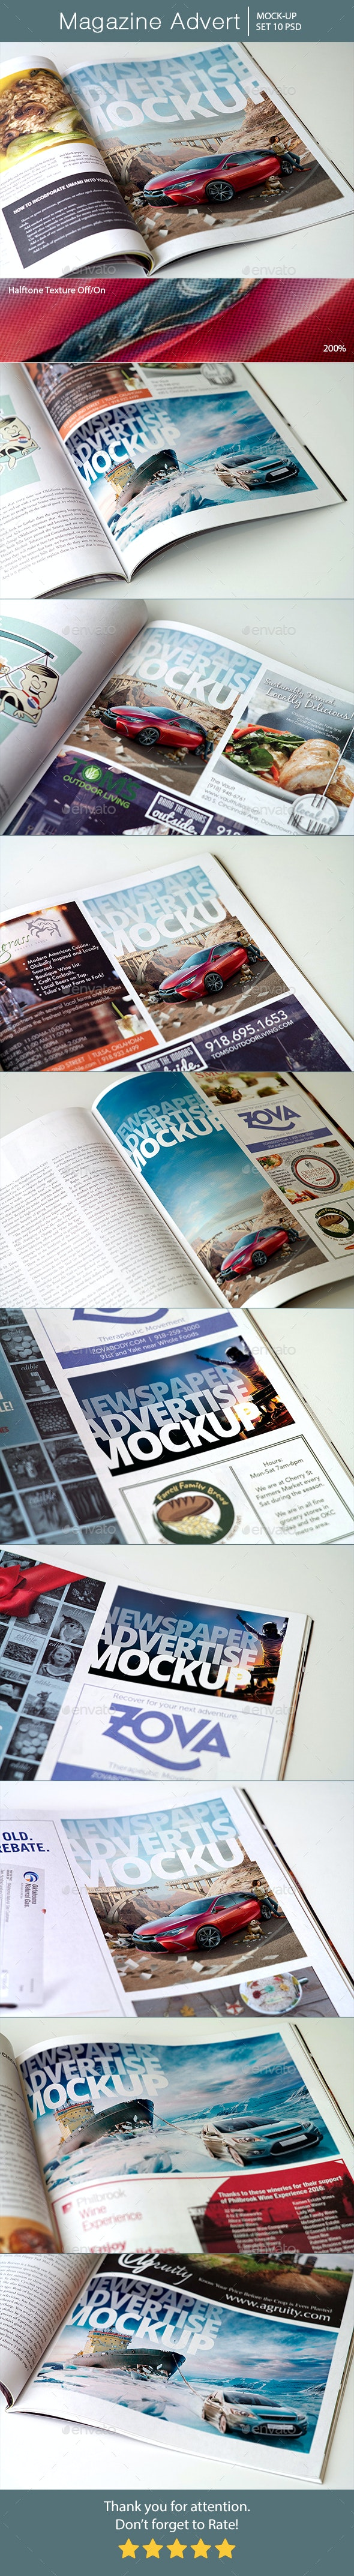 Magazine Advert Mockups - Miscellaneous Print